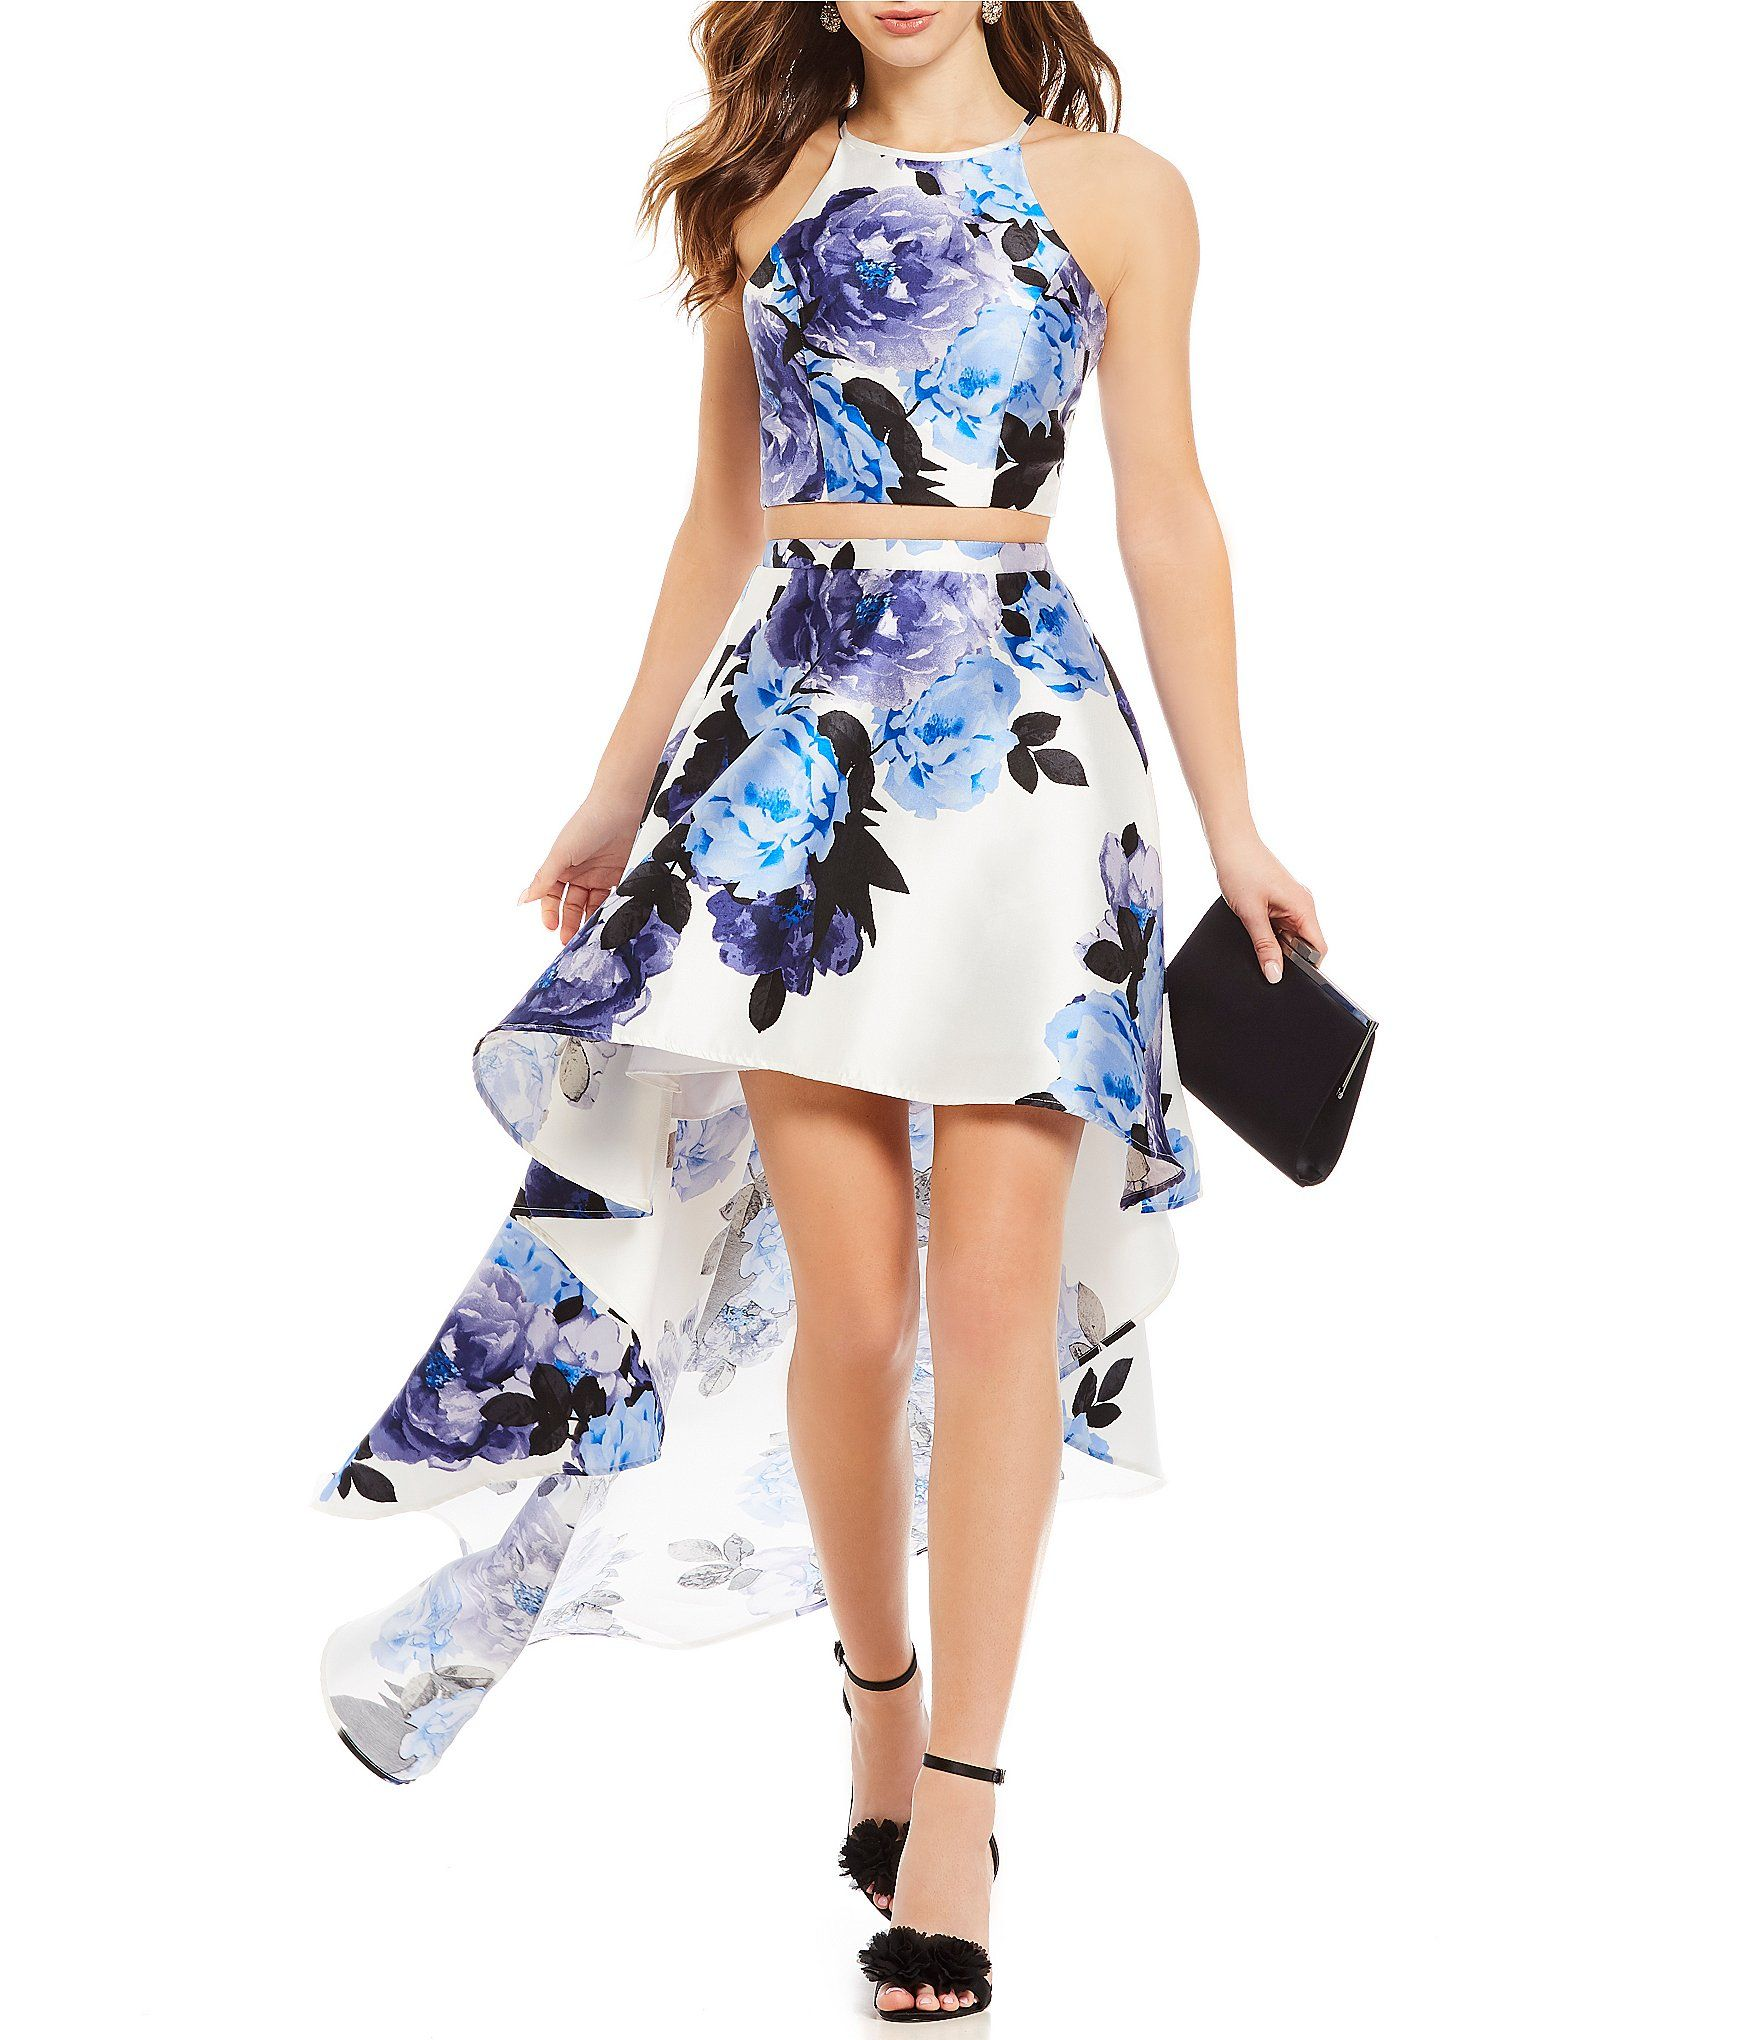 3d04eb279 Shop for Xtraordinary Floral Print Two-Piece High-Low Dress at  Dillards.com. Visit Dillards.com to find clothing, accessories, shoes,  cosmetics & more.